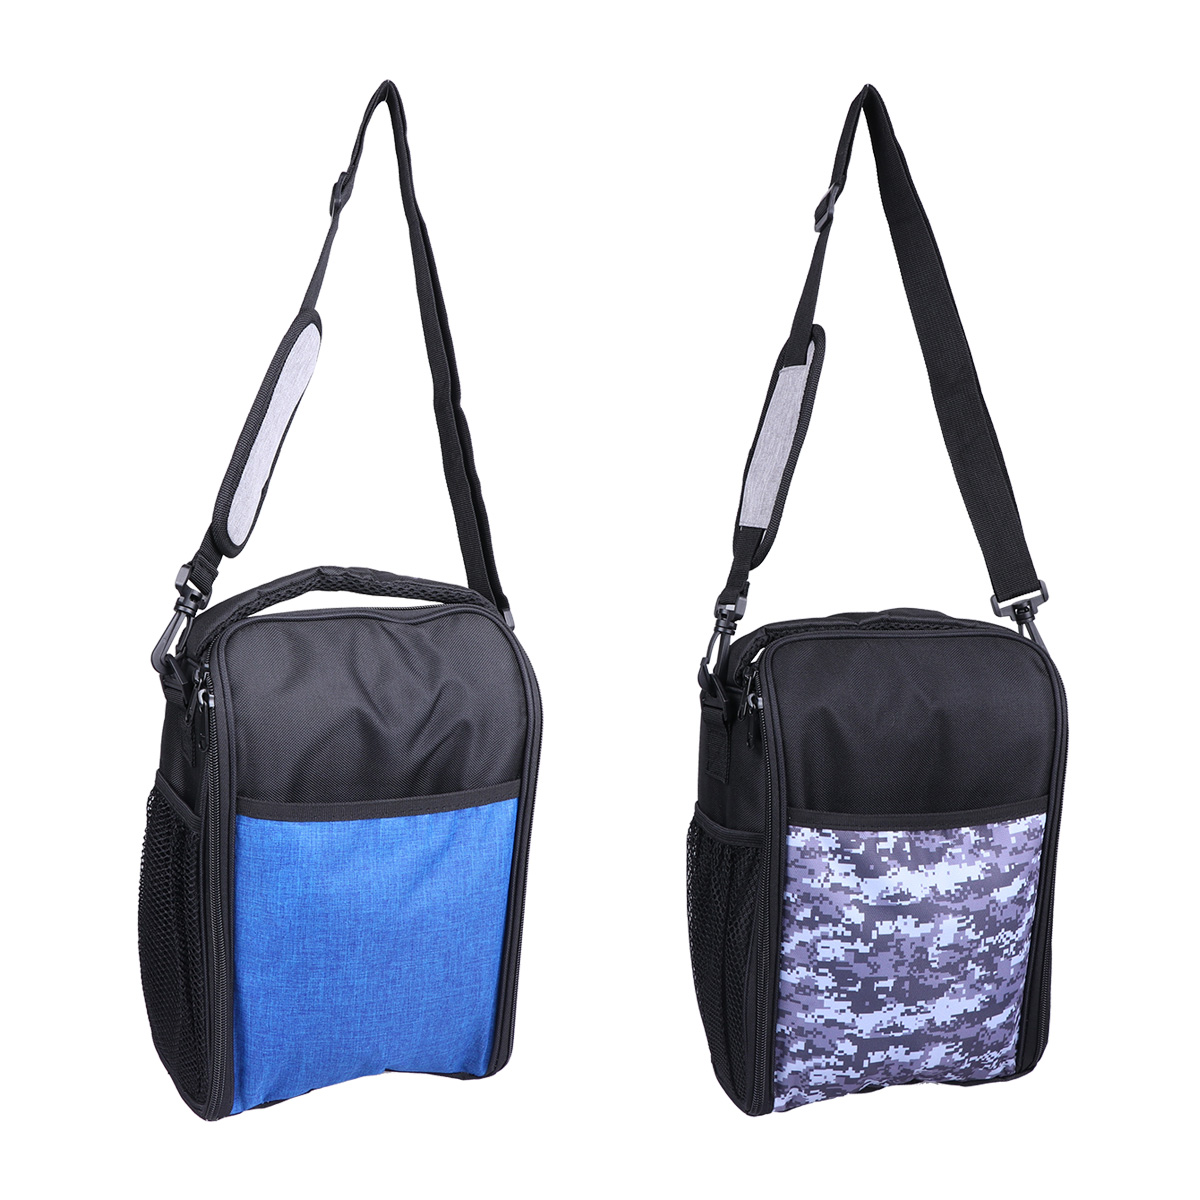 1PC Oxford Fabric Wine Carrier Insulation Folding Picnic Portable <font><b>Ice</b></font> <font><b>Pack</b></font> Cross Body Multifunction Student <font><b>Lunch</b></font> Cooler Bag image